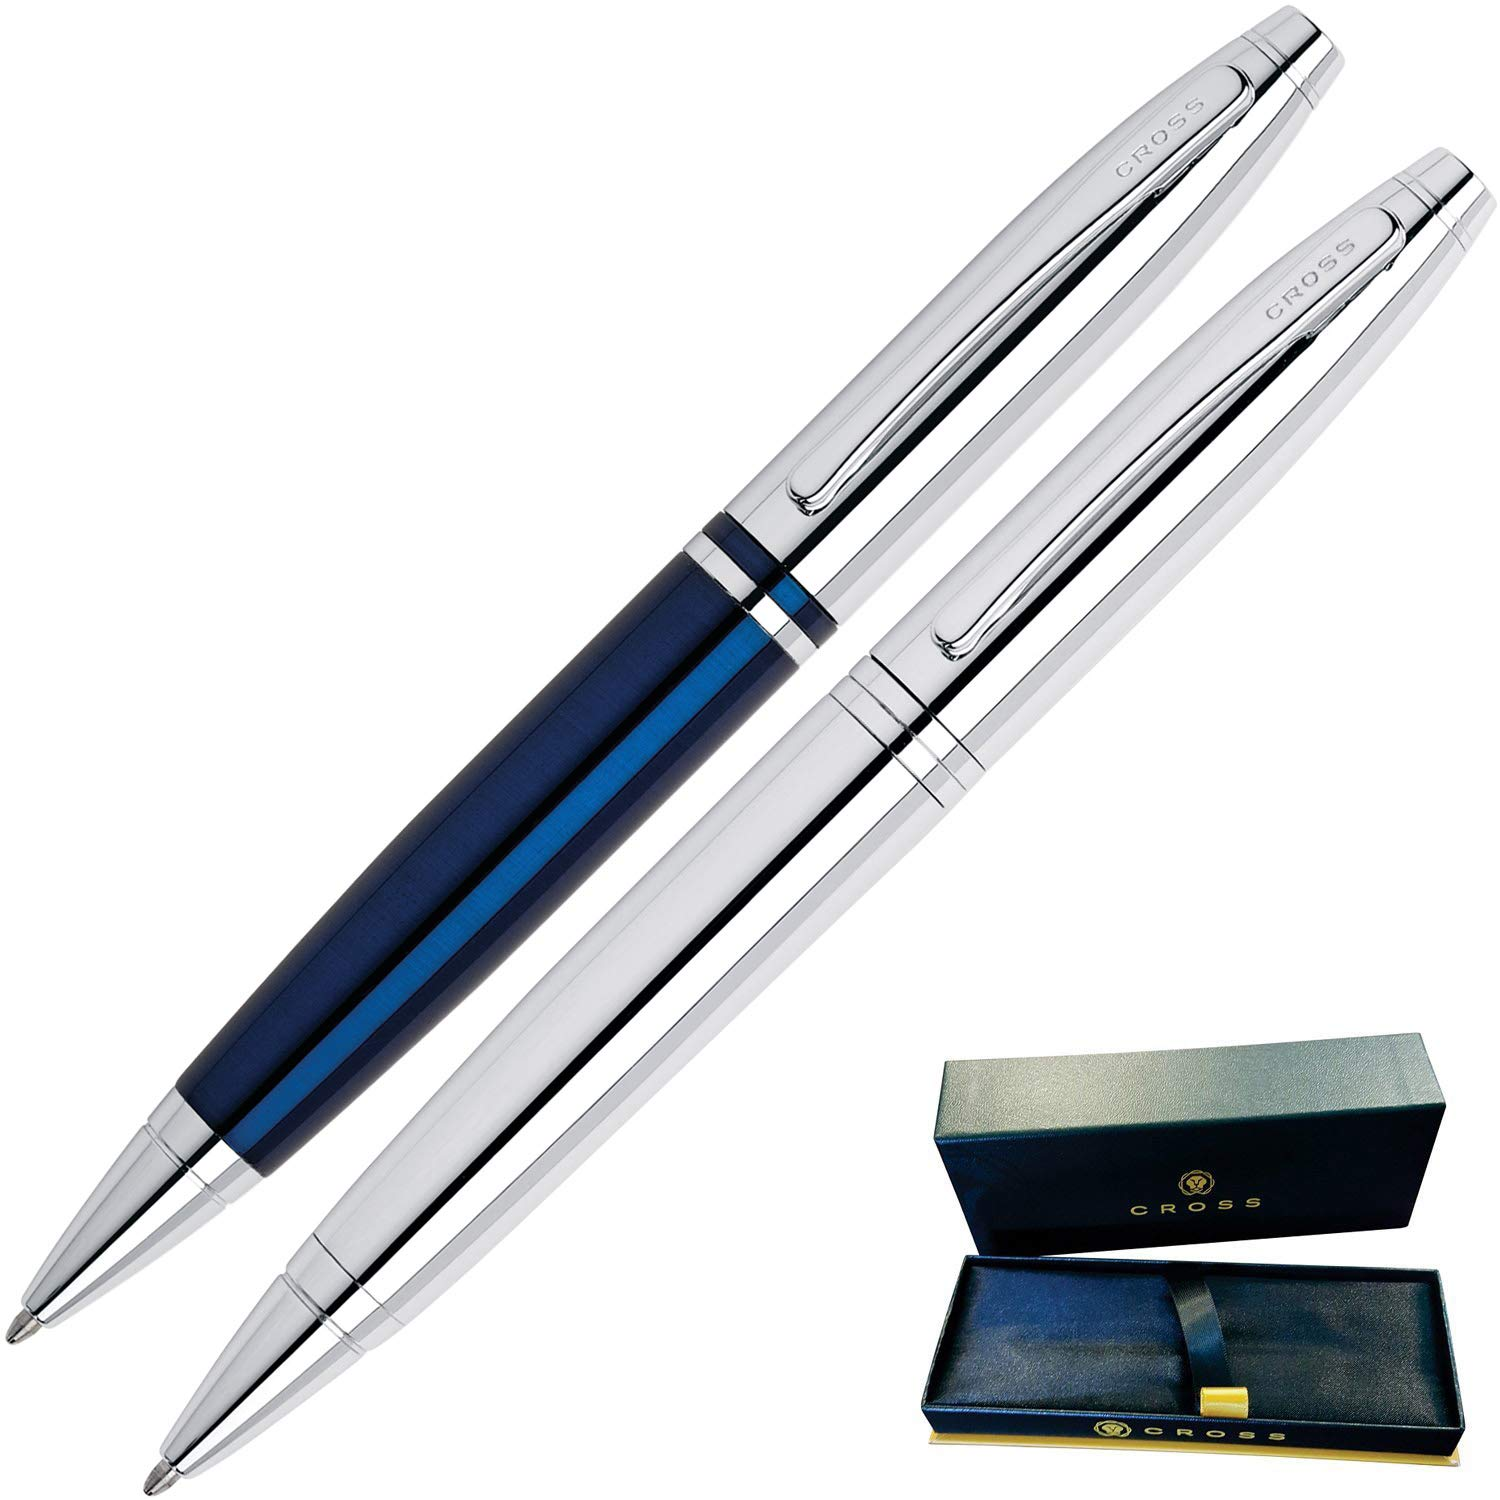 Dayspring Pens | Engraved/Personalized Cross Calais Gift Double Gift Pen Set -1 Chrome and 1 Blue Pen. Custom Engraved Fast! by Dayspring Pens (Image #2)